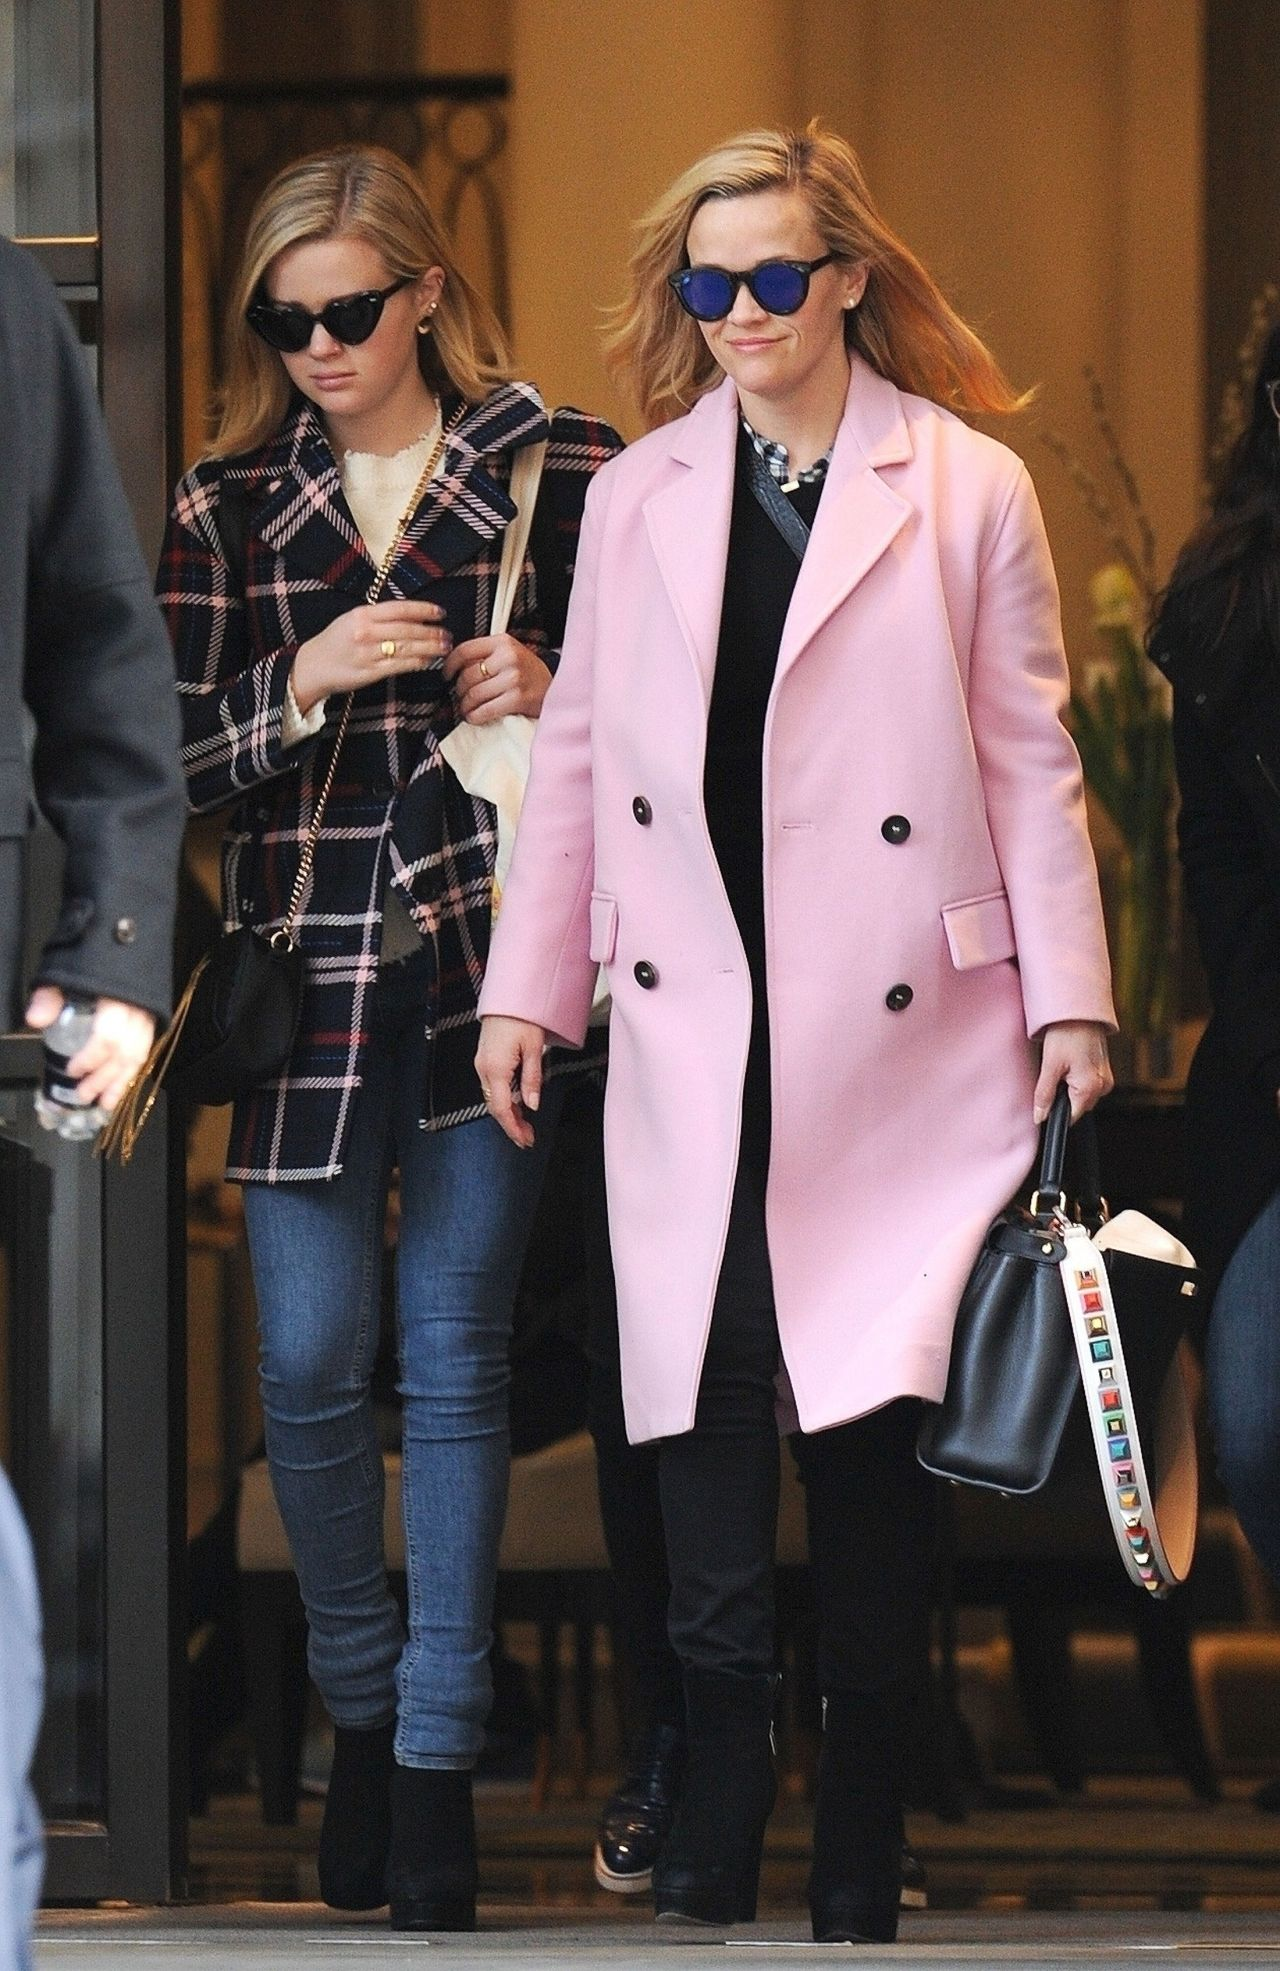 http://celebmafia.com/wp-content/uploads/2018/03/reese-witherspoon-and-ava-phillippe-leaving-the-corinthia-hotel-in-london-03-14-2018-6.jpg